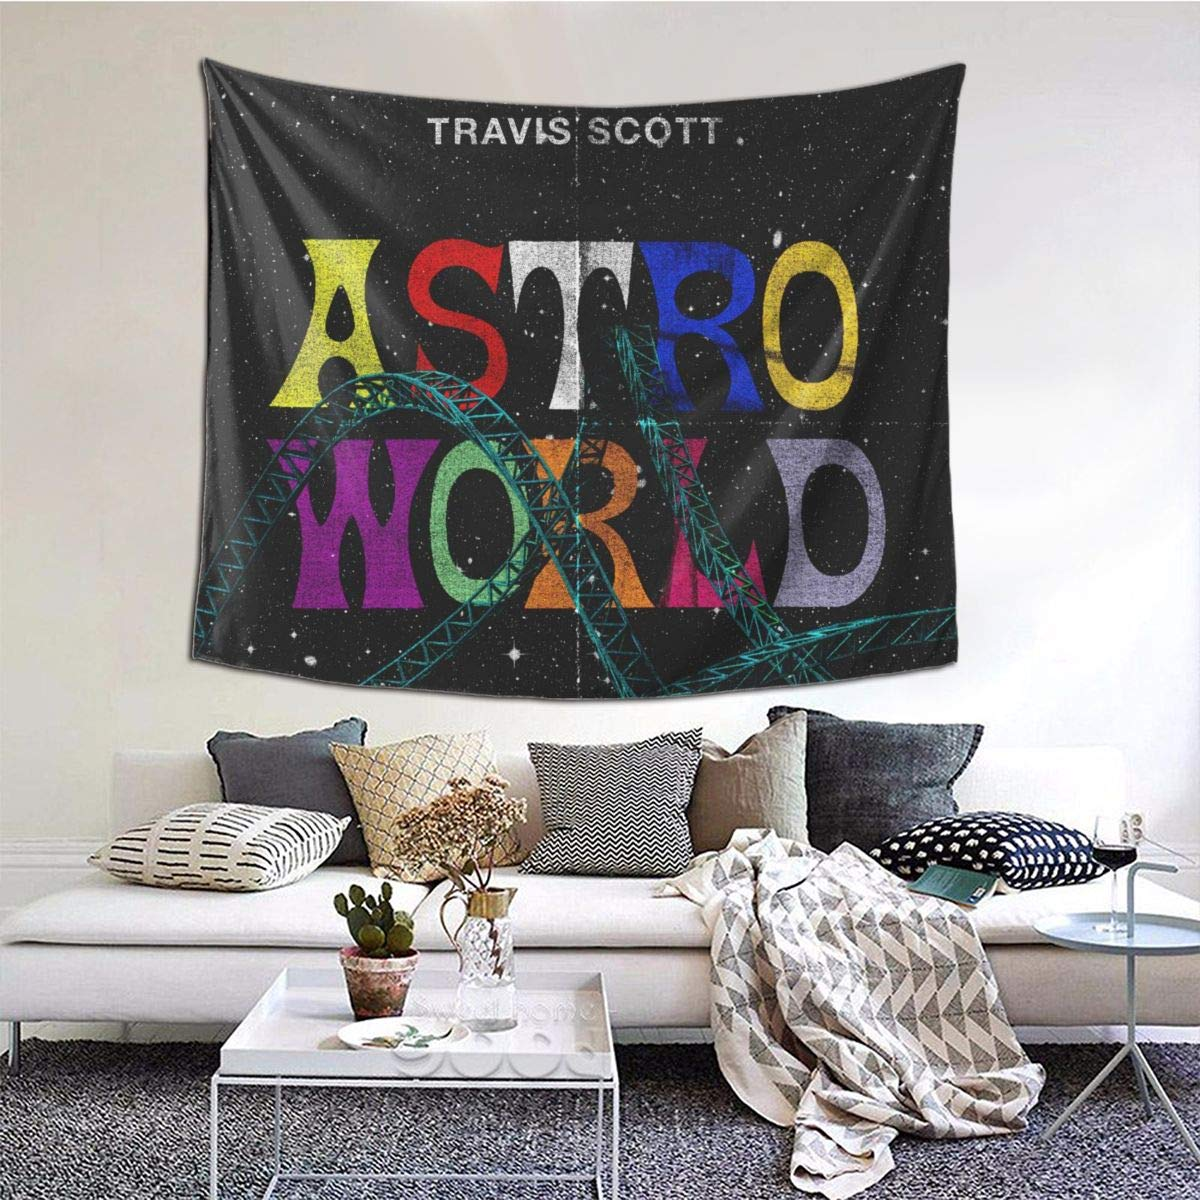 Coolertaste Astroworld Poster Tapestry Wall Hanging For Living Room Bedroom Dorm Room Home Decor 60 X 51 In Amazon Com Au Miscellaneous